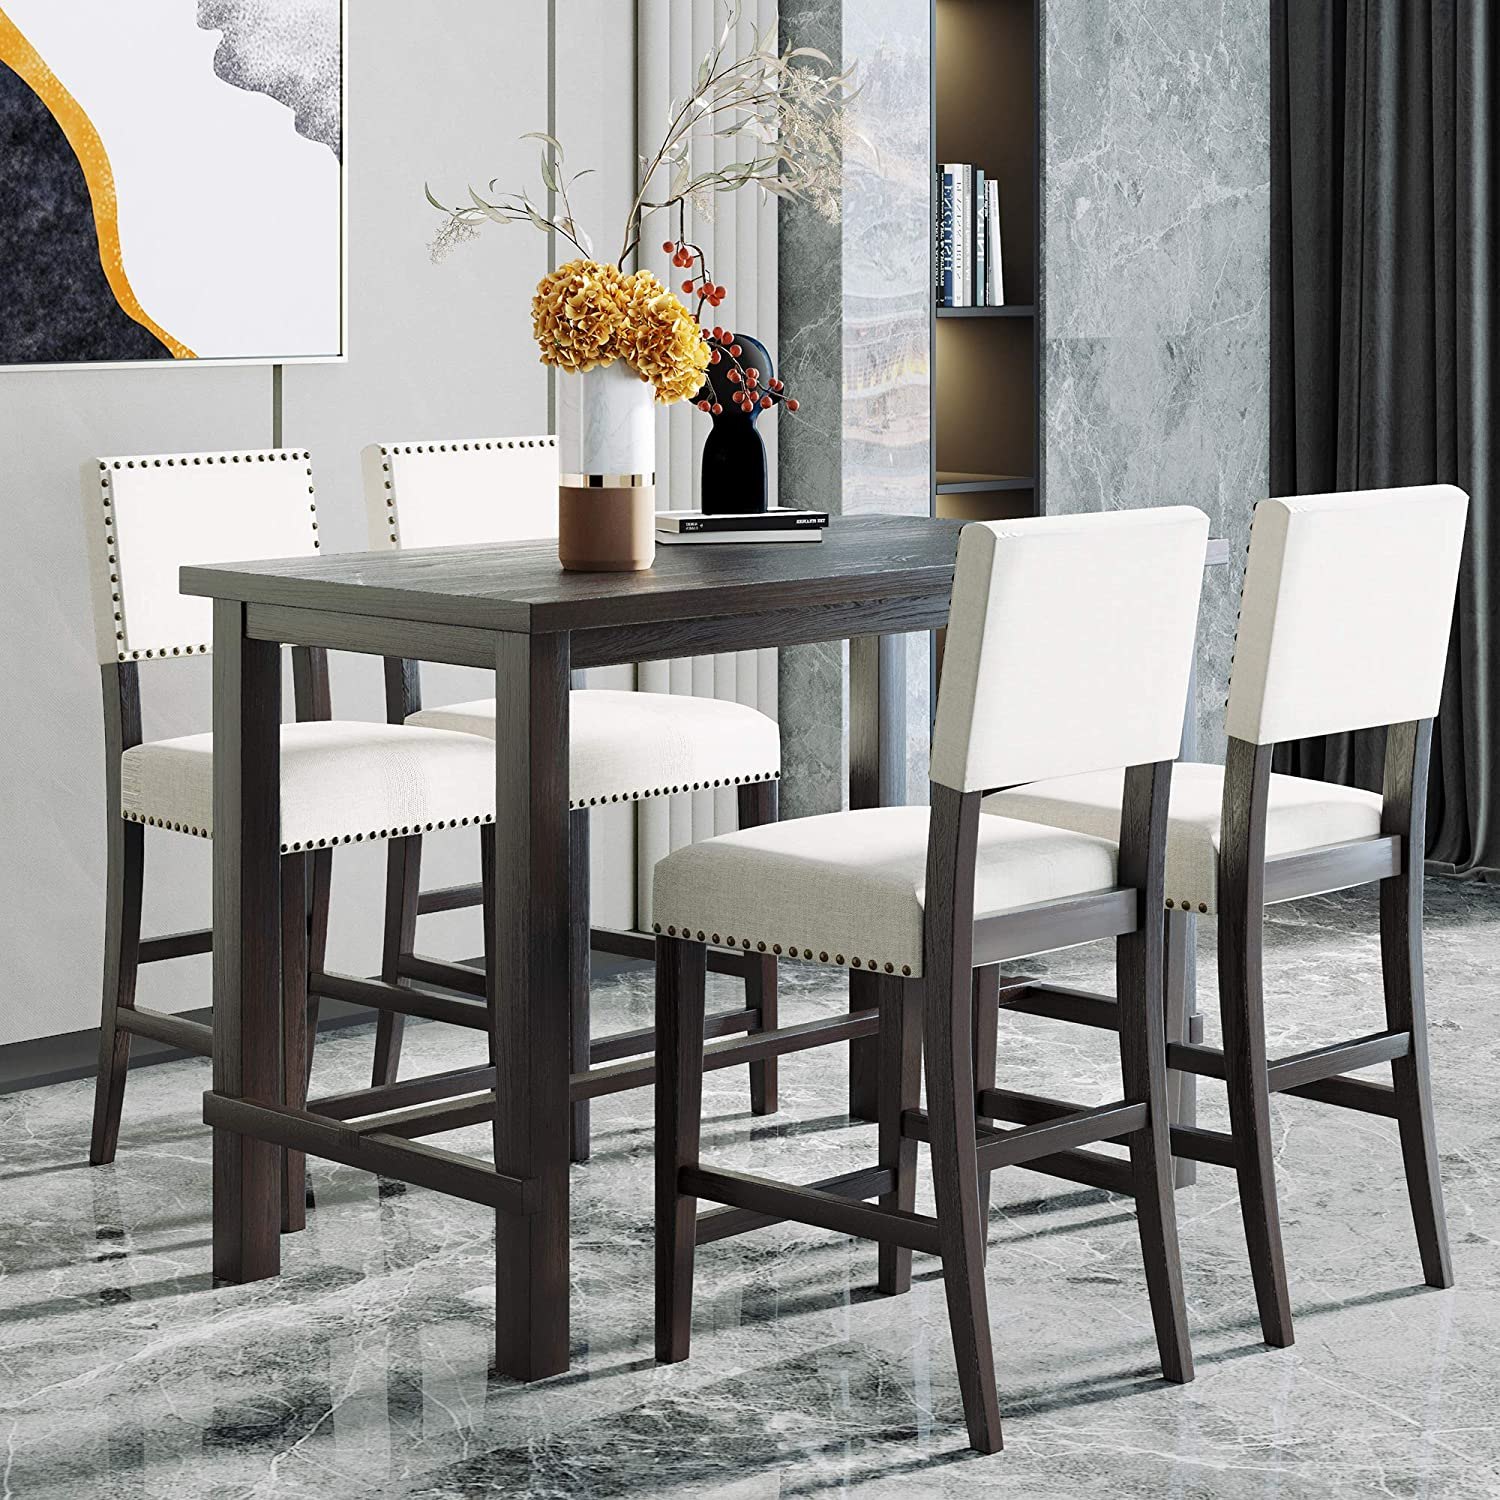 Piece Dining Table Set Counter Height, High Dining Room Tables